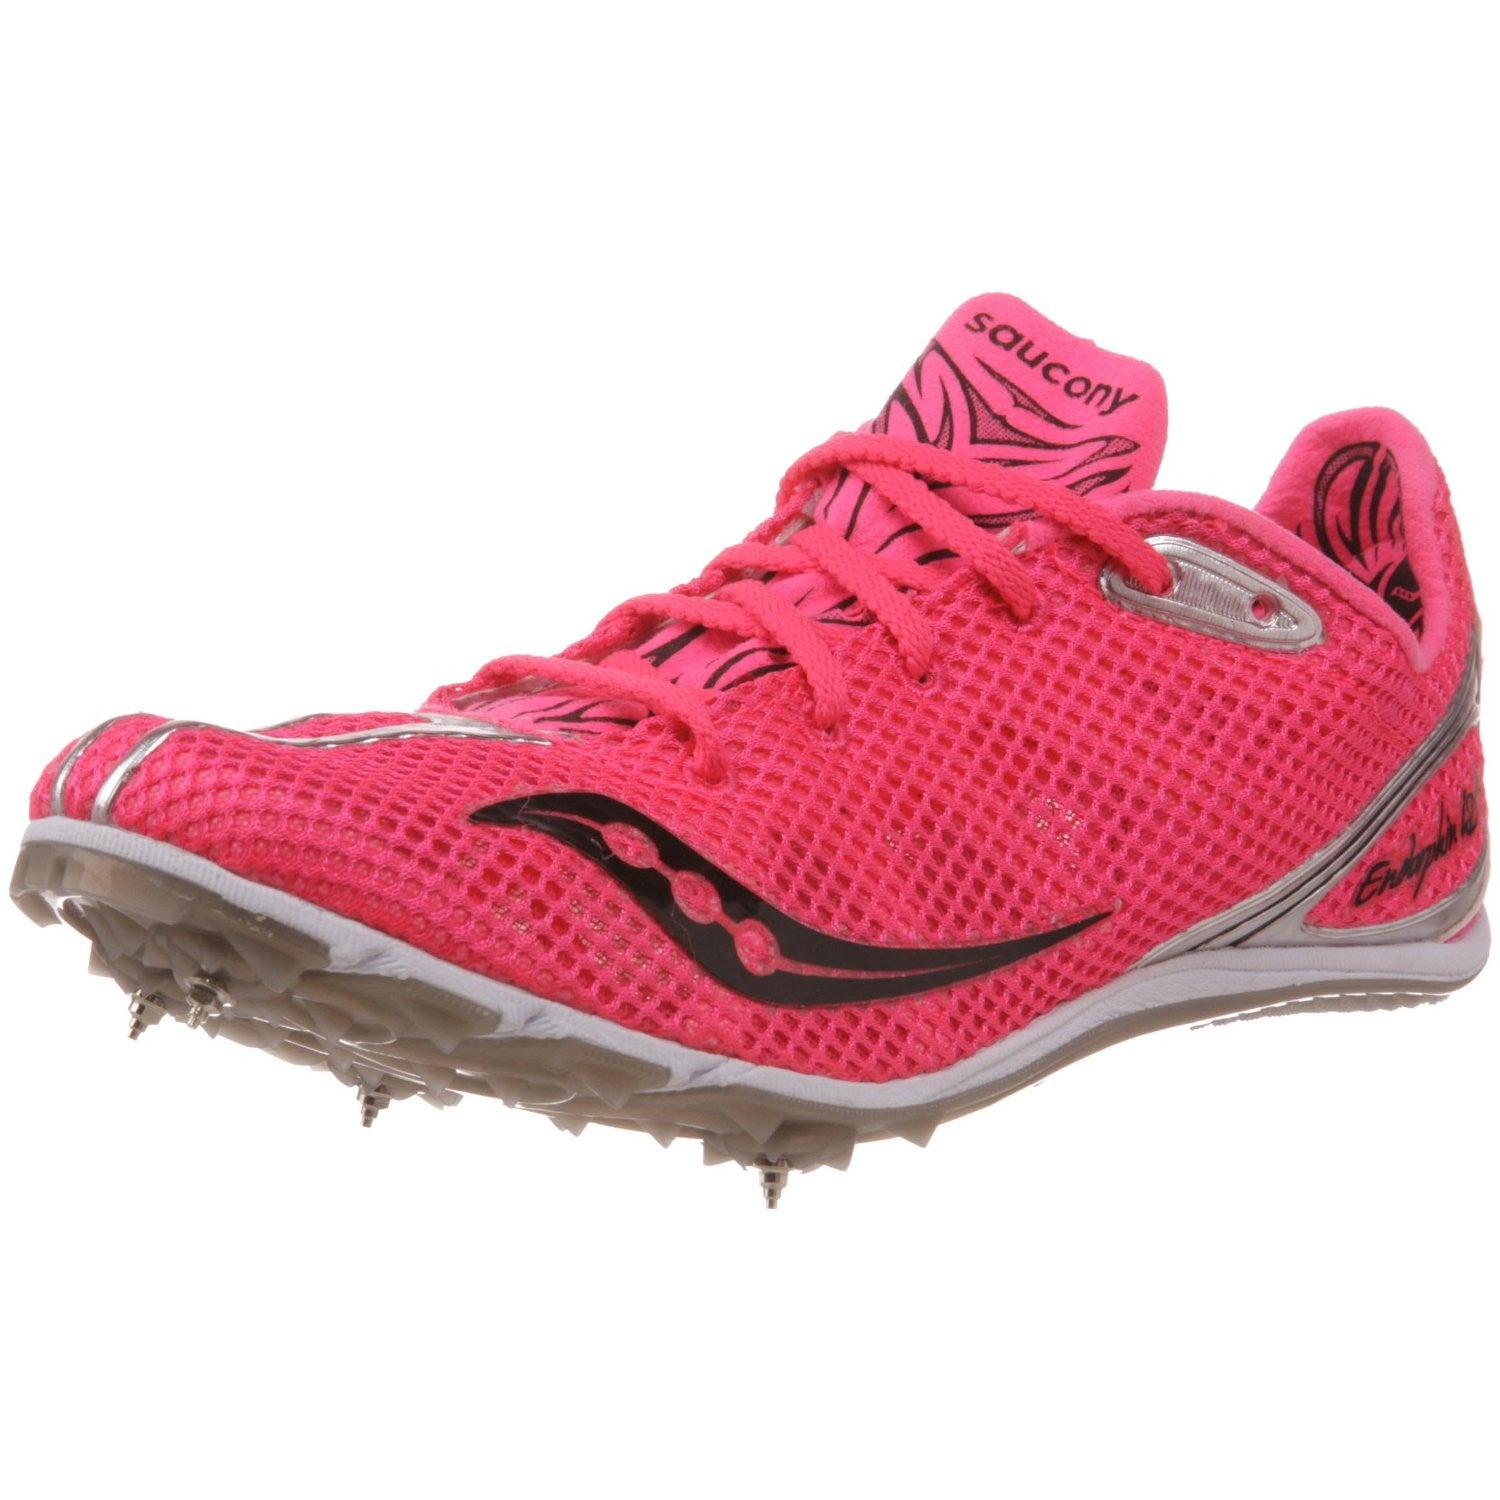 buy popular e59f2 cf255 Saucony Women's Endorphin Ld2 Track Shoe